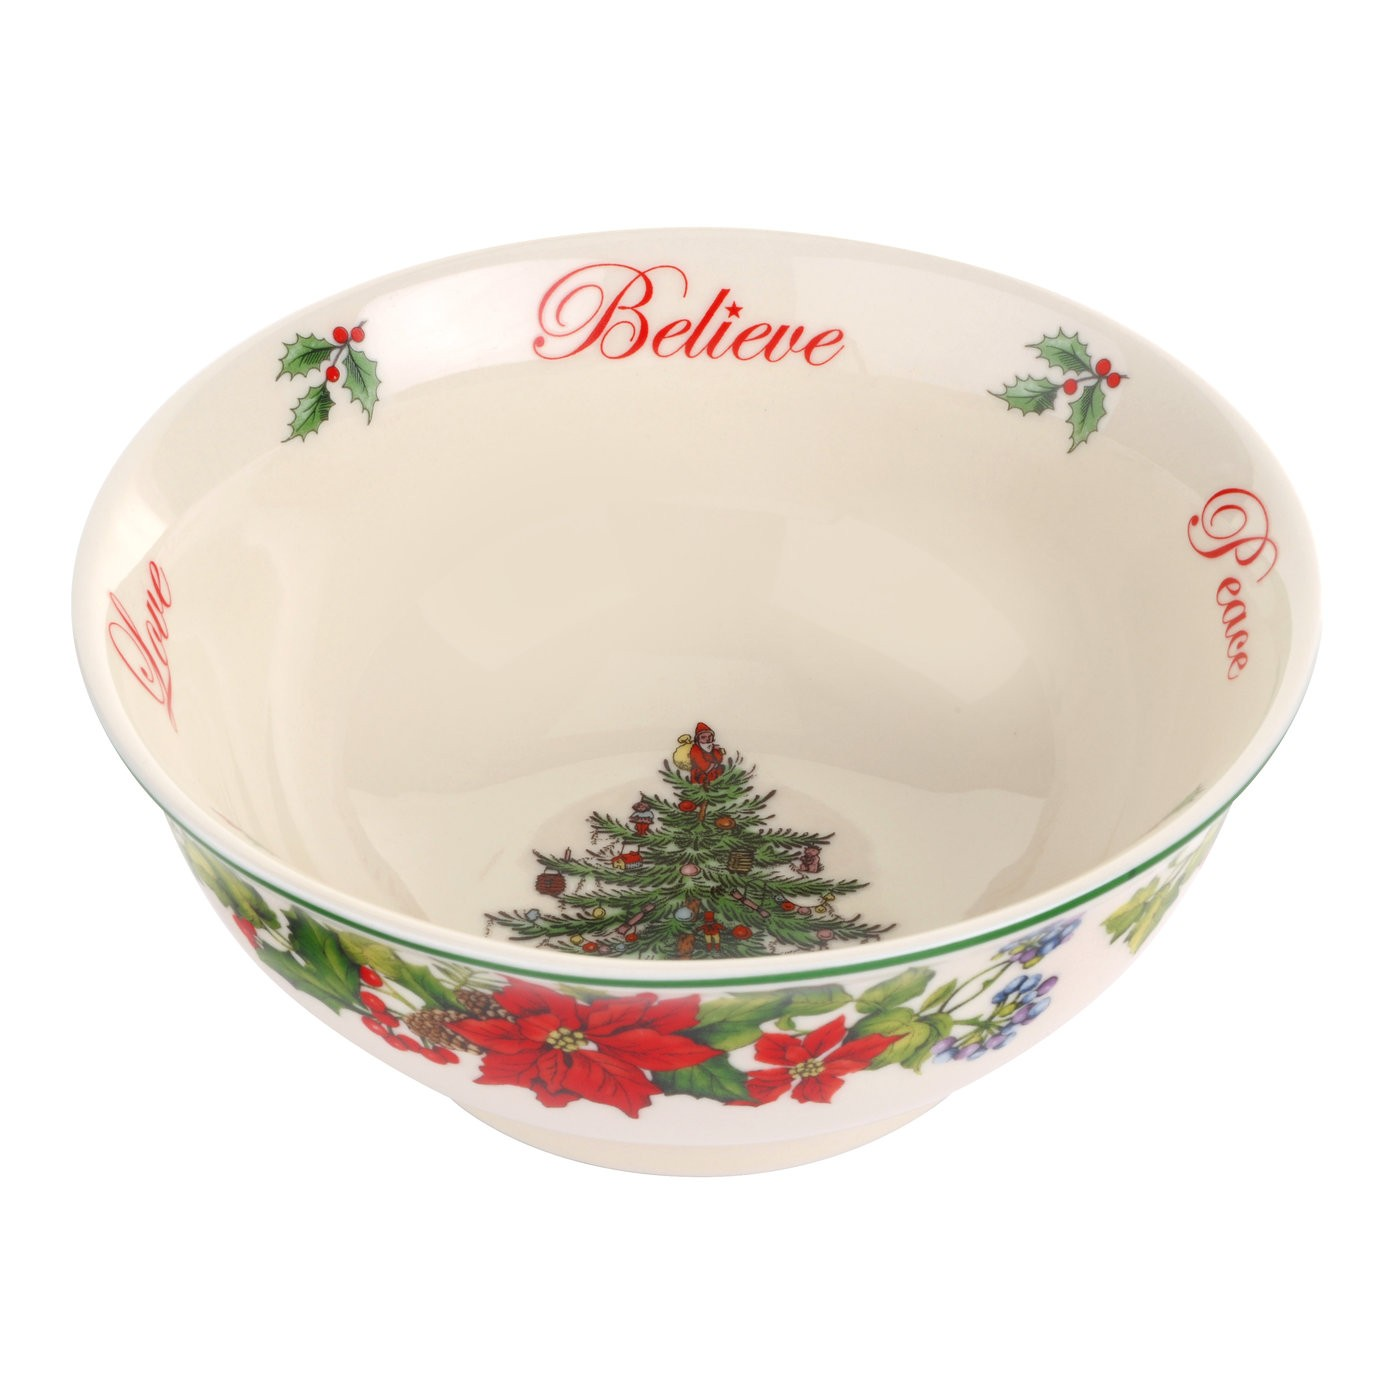 spode christmas tree 2016 revere candy bowl believe joy peace love - Christmas Candy Dishes